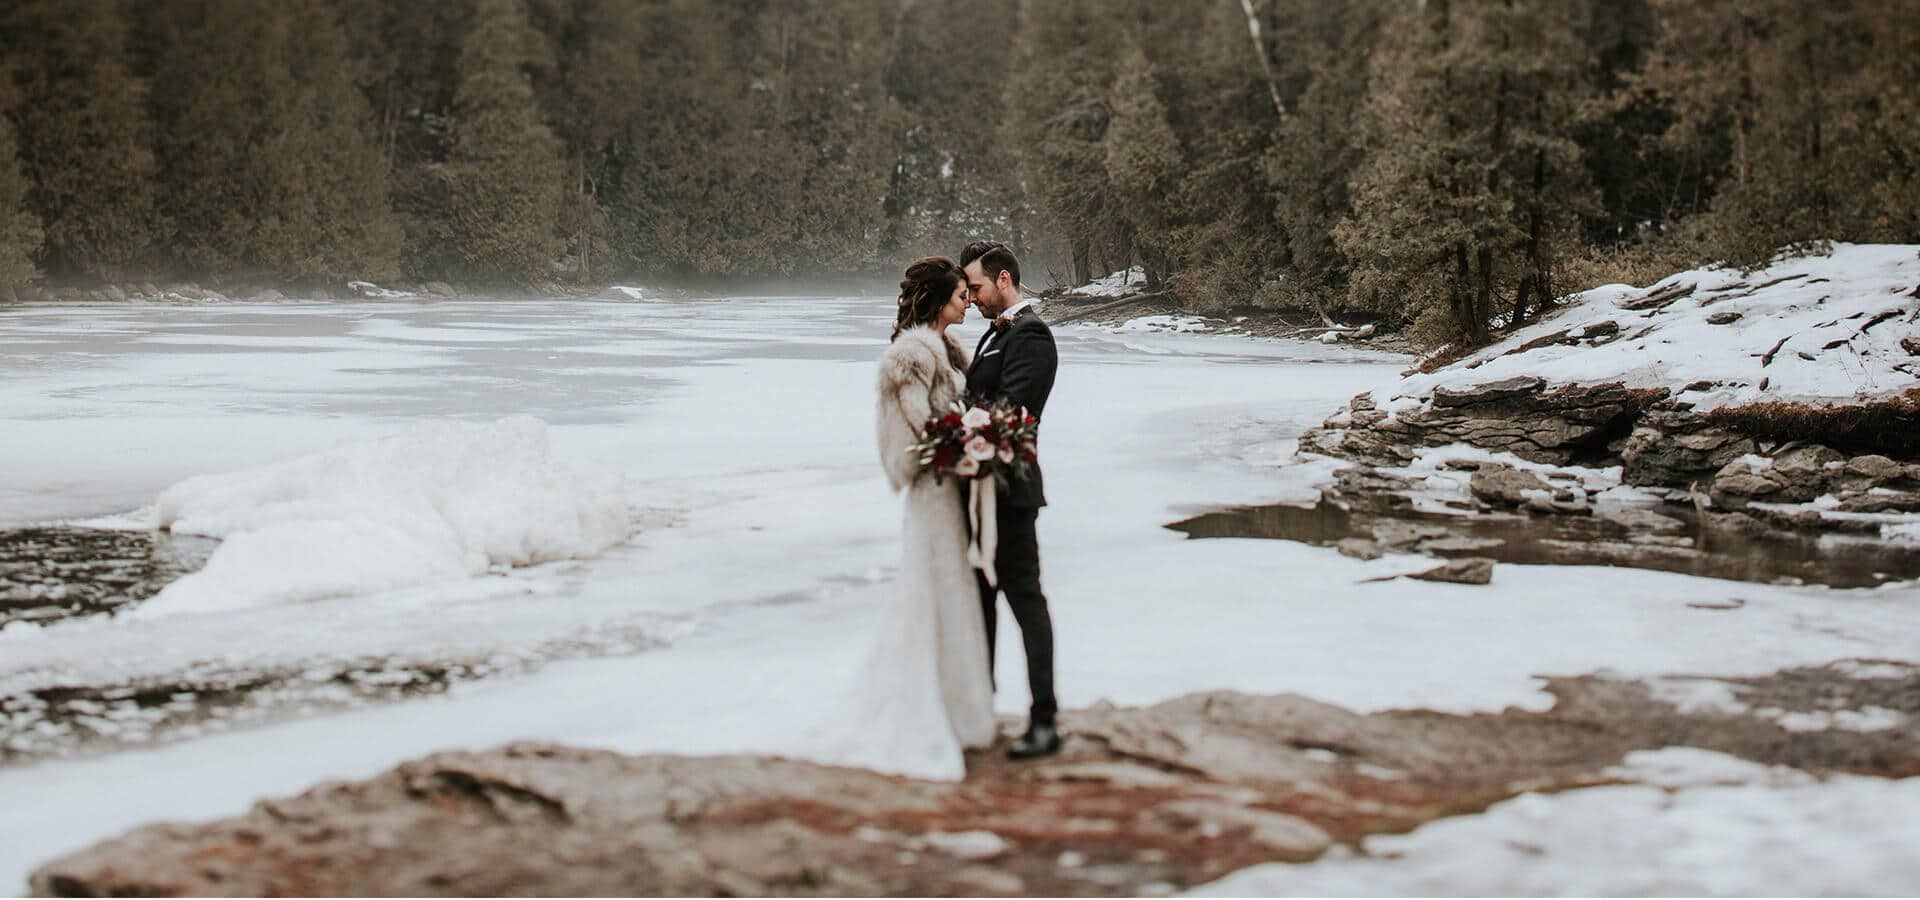 Hero image for 15 Toronto Wedding Photographers Share Their Best of Photography from 2017